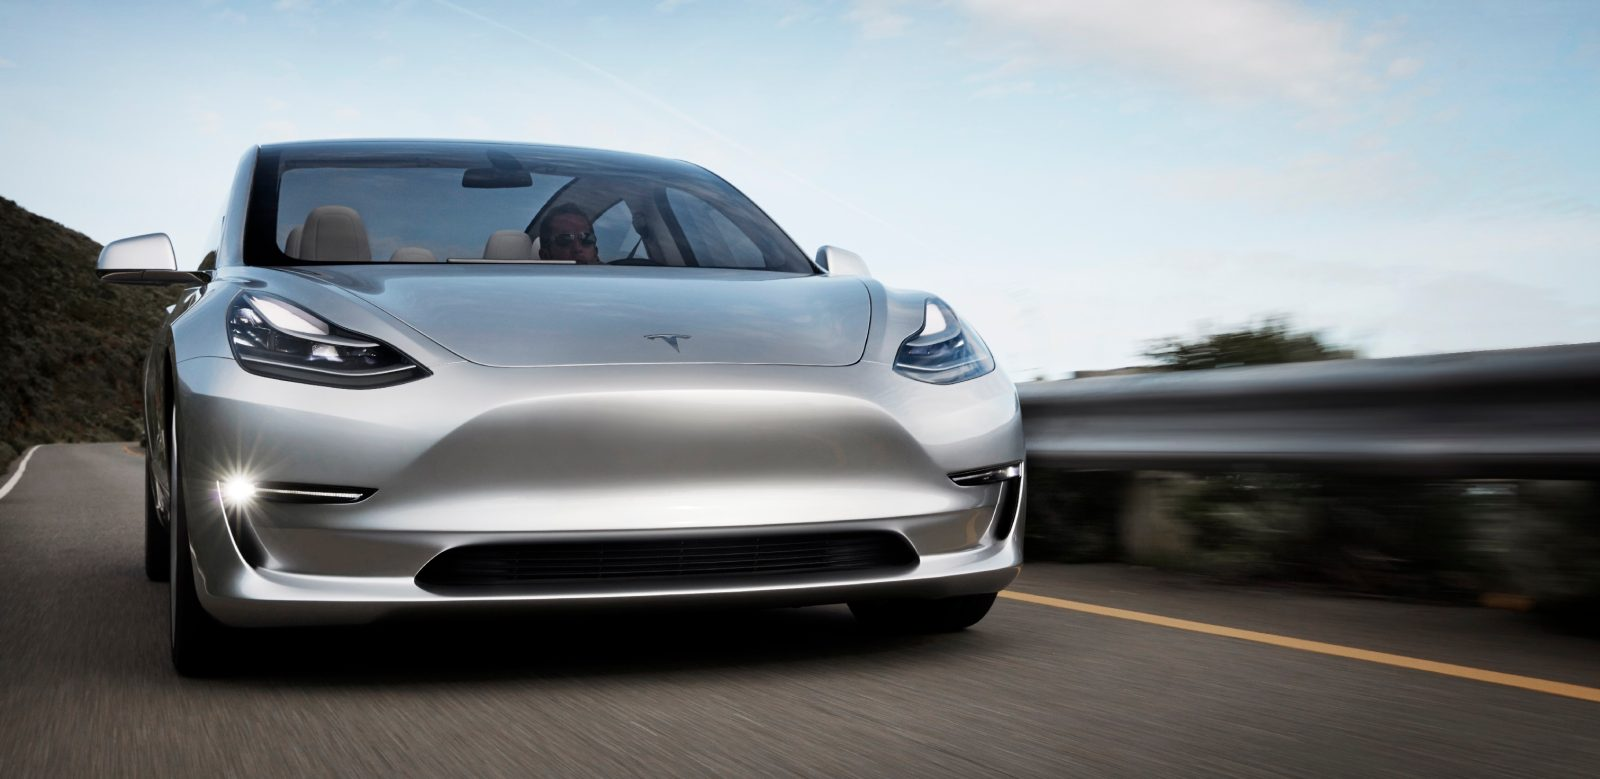 Tesla is prioritizing Model 3 deliveries to employees, but they can't resell for a profit